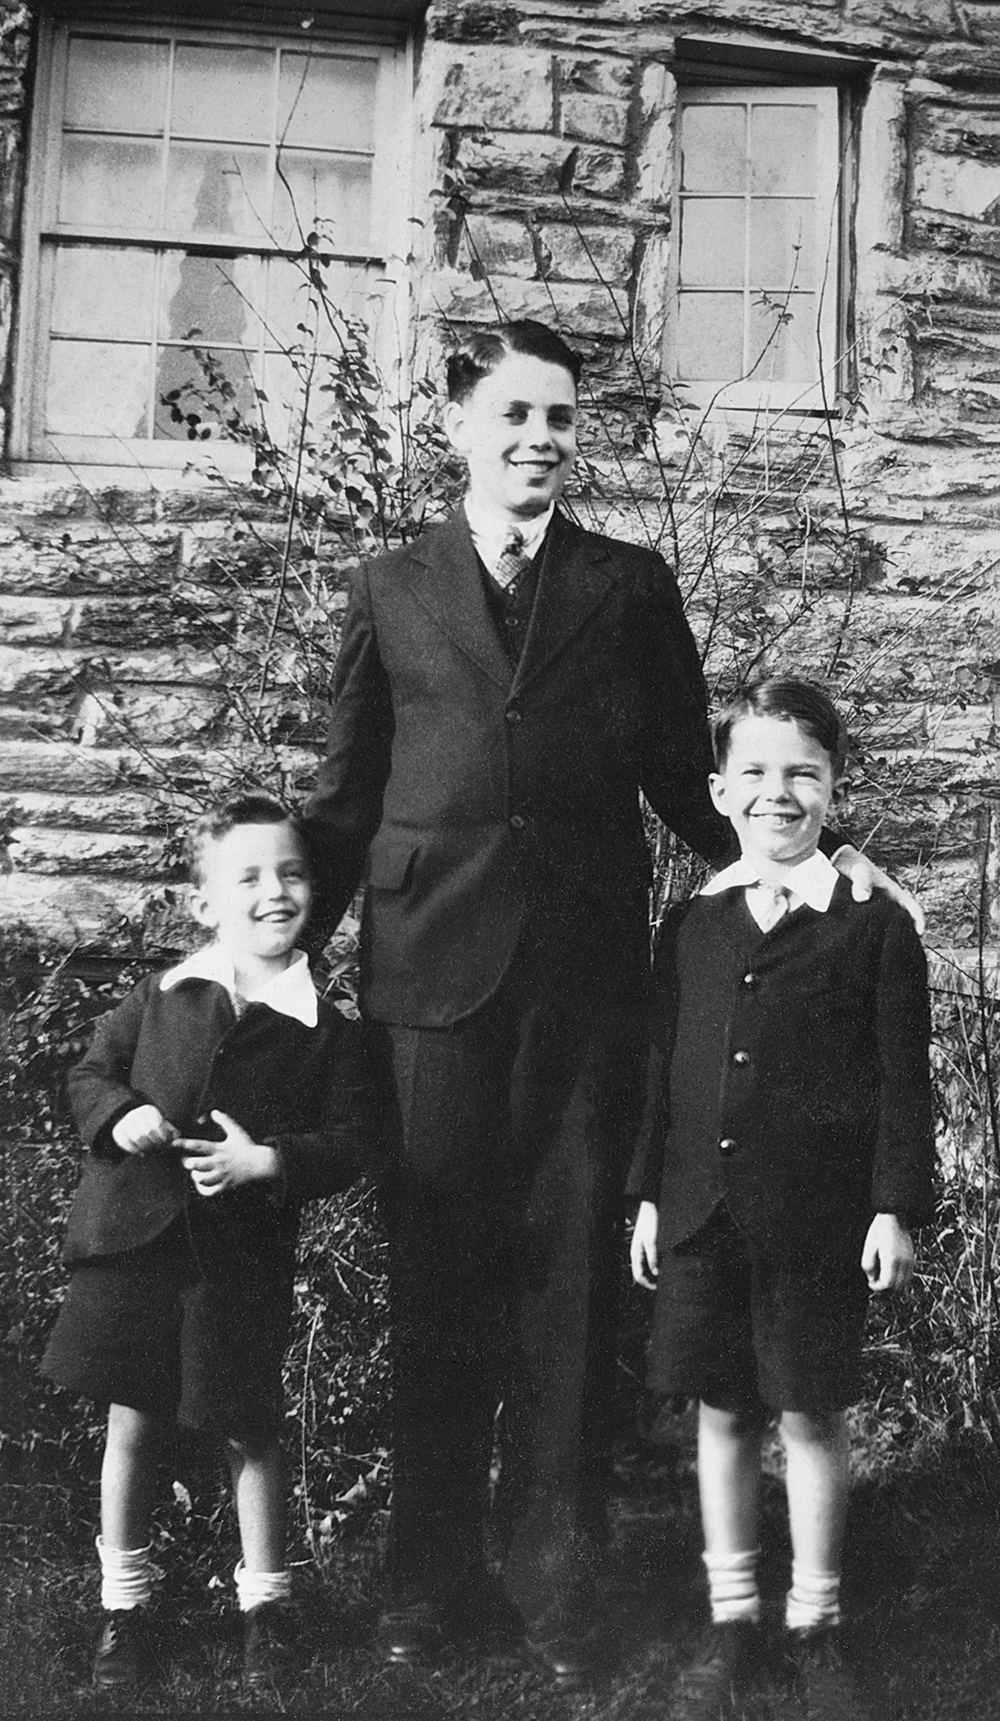 Richard, Buddy and Doug, 1934